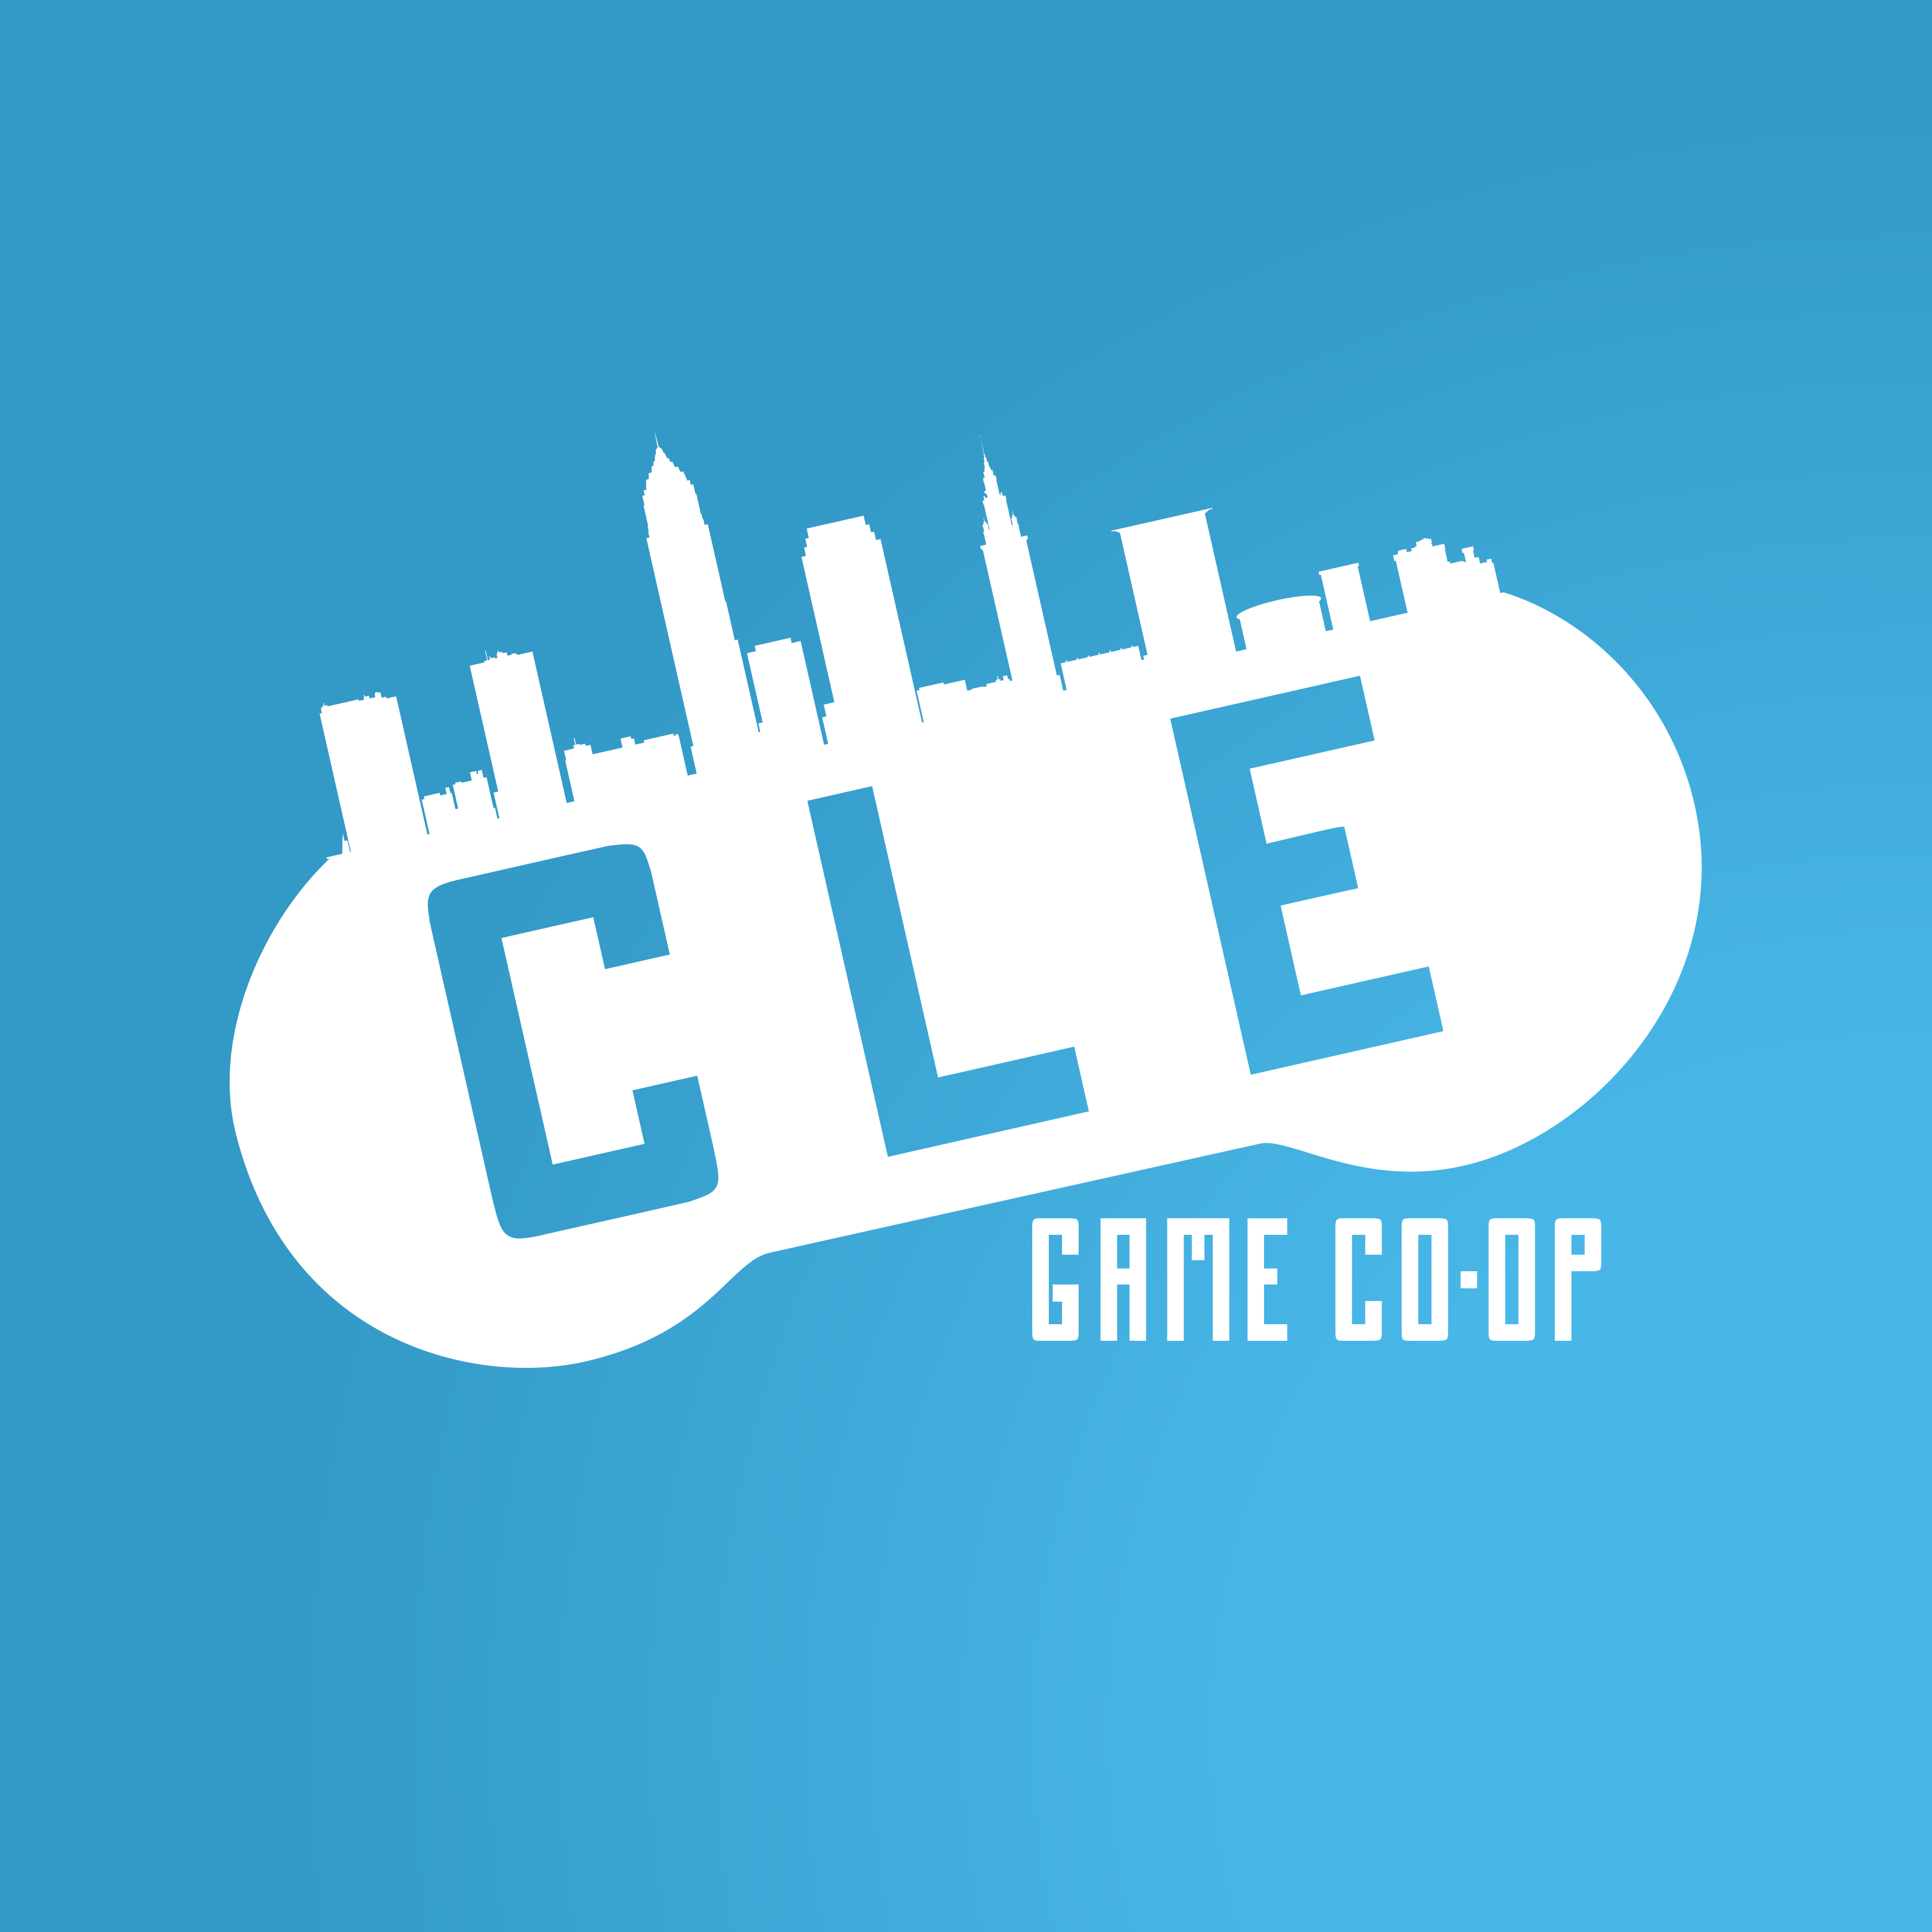 CLE Game Co-Op